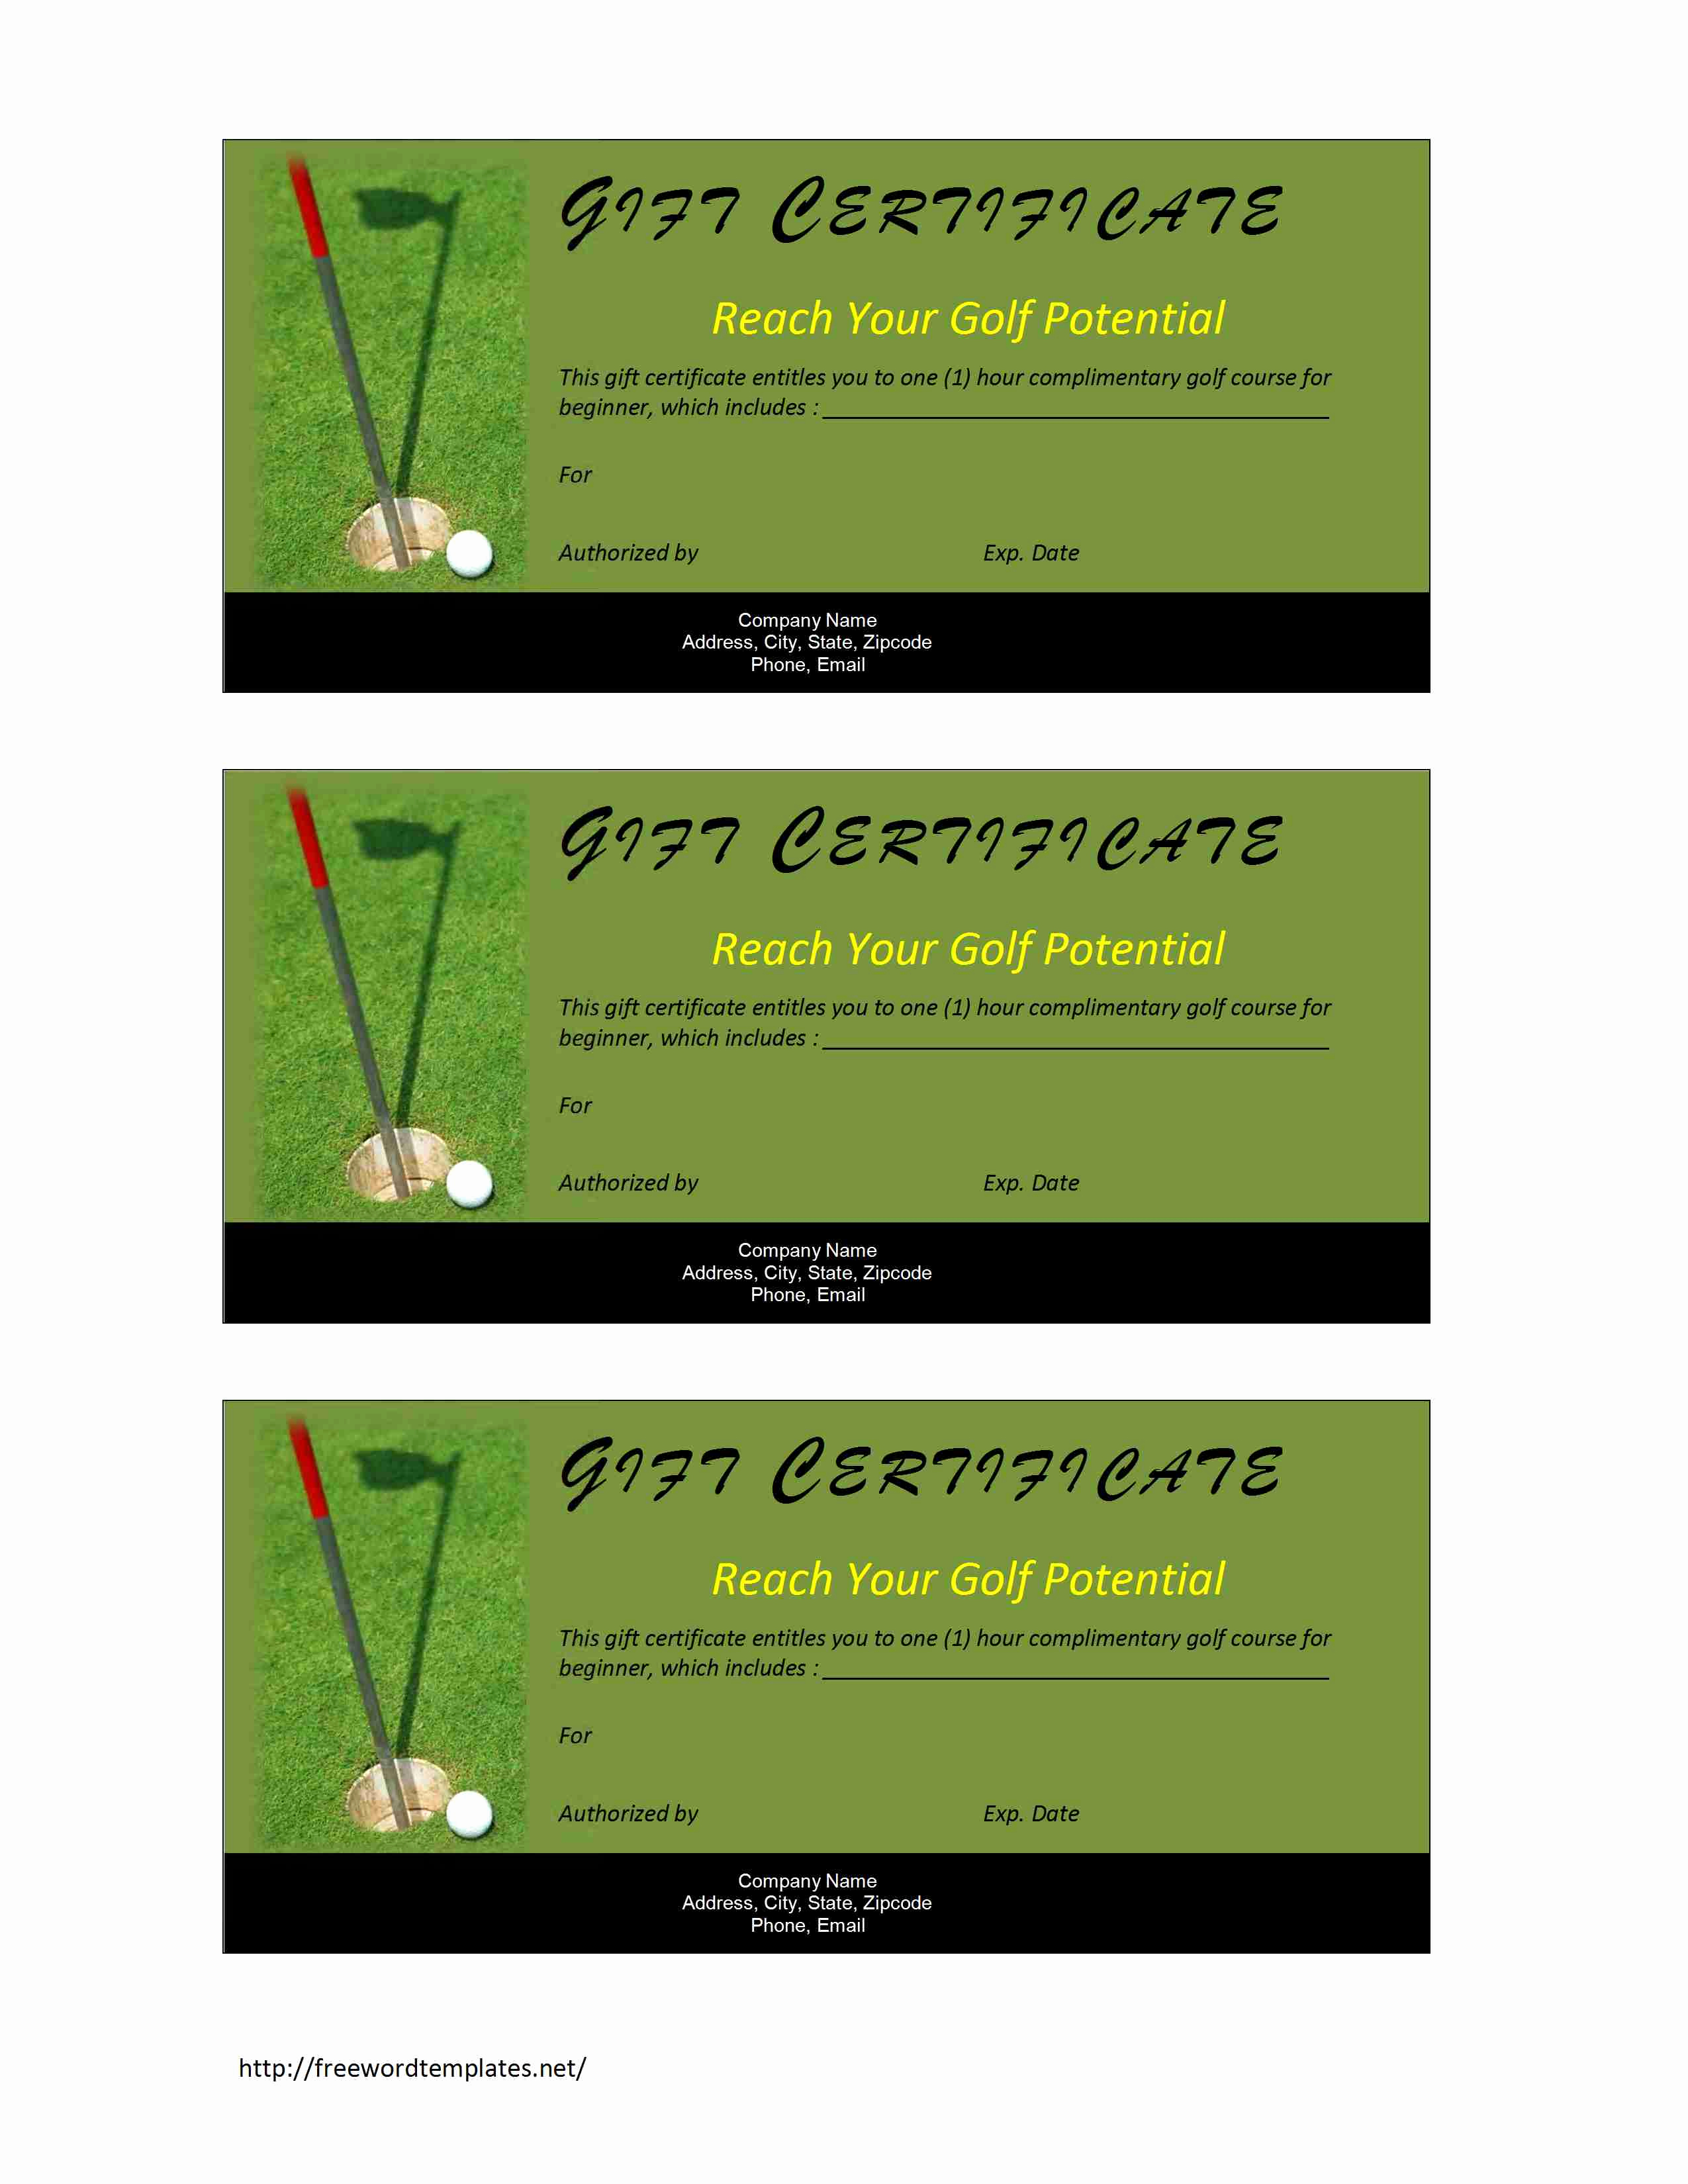 Template for Gift Certificate Inspirational Golf Gift Certificate